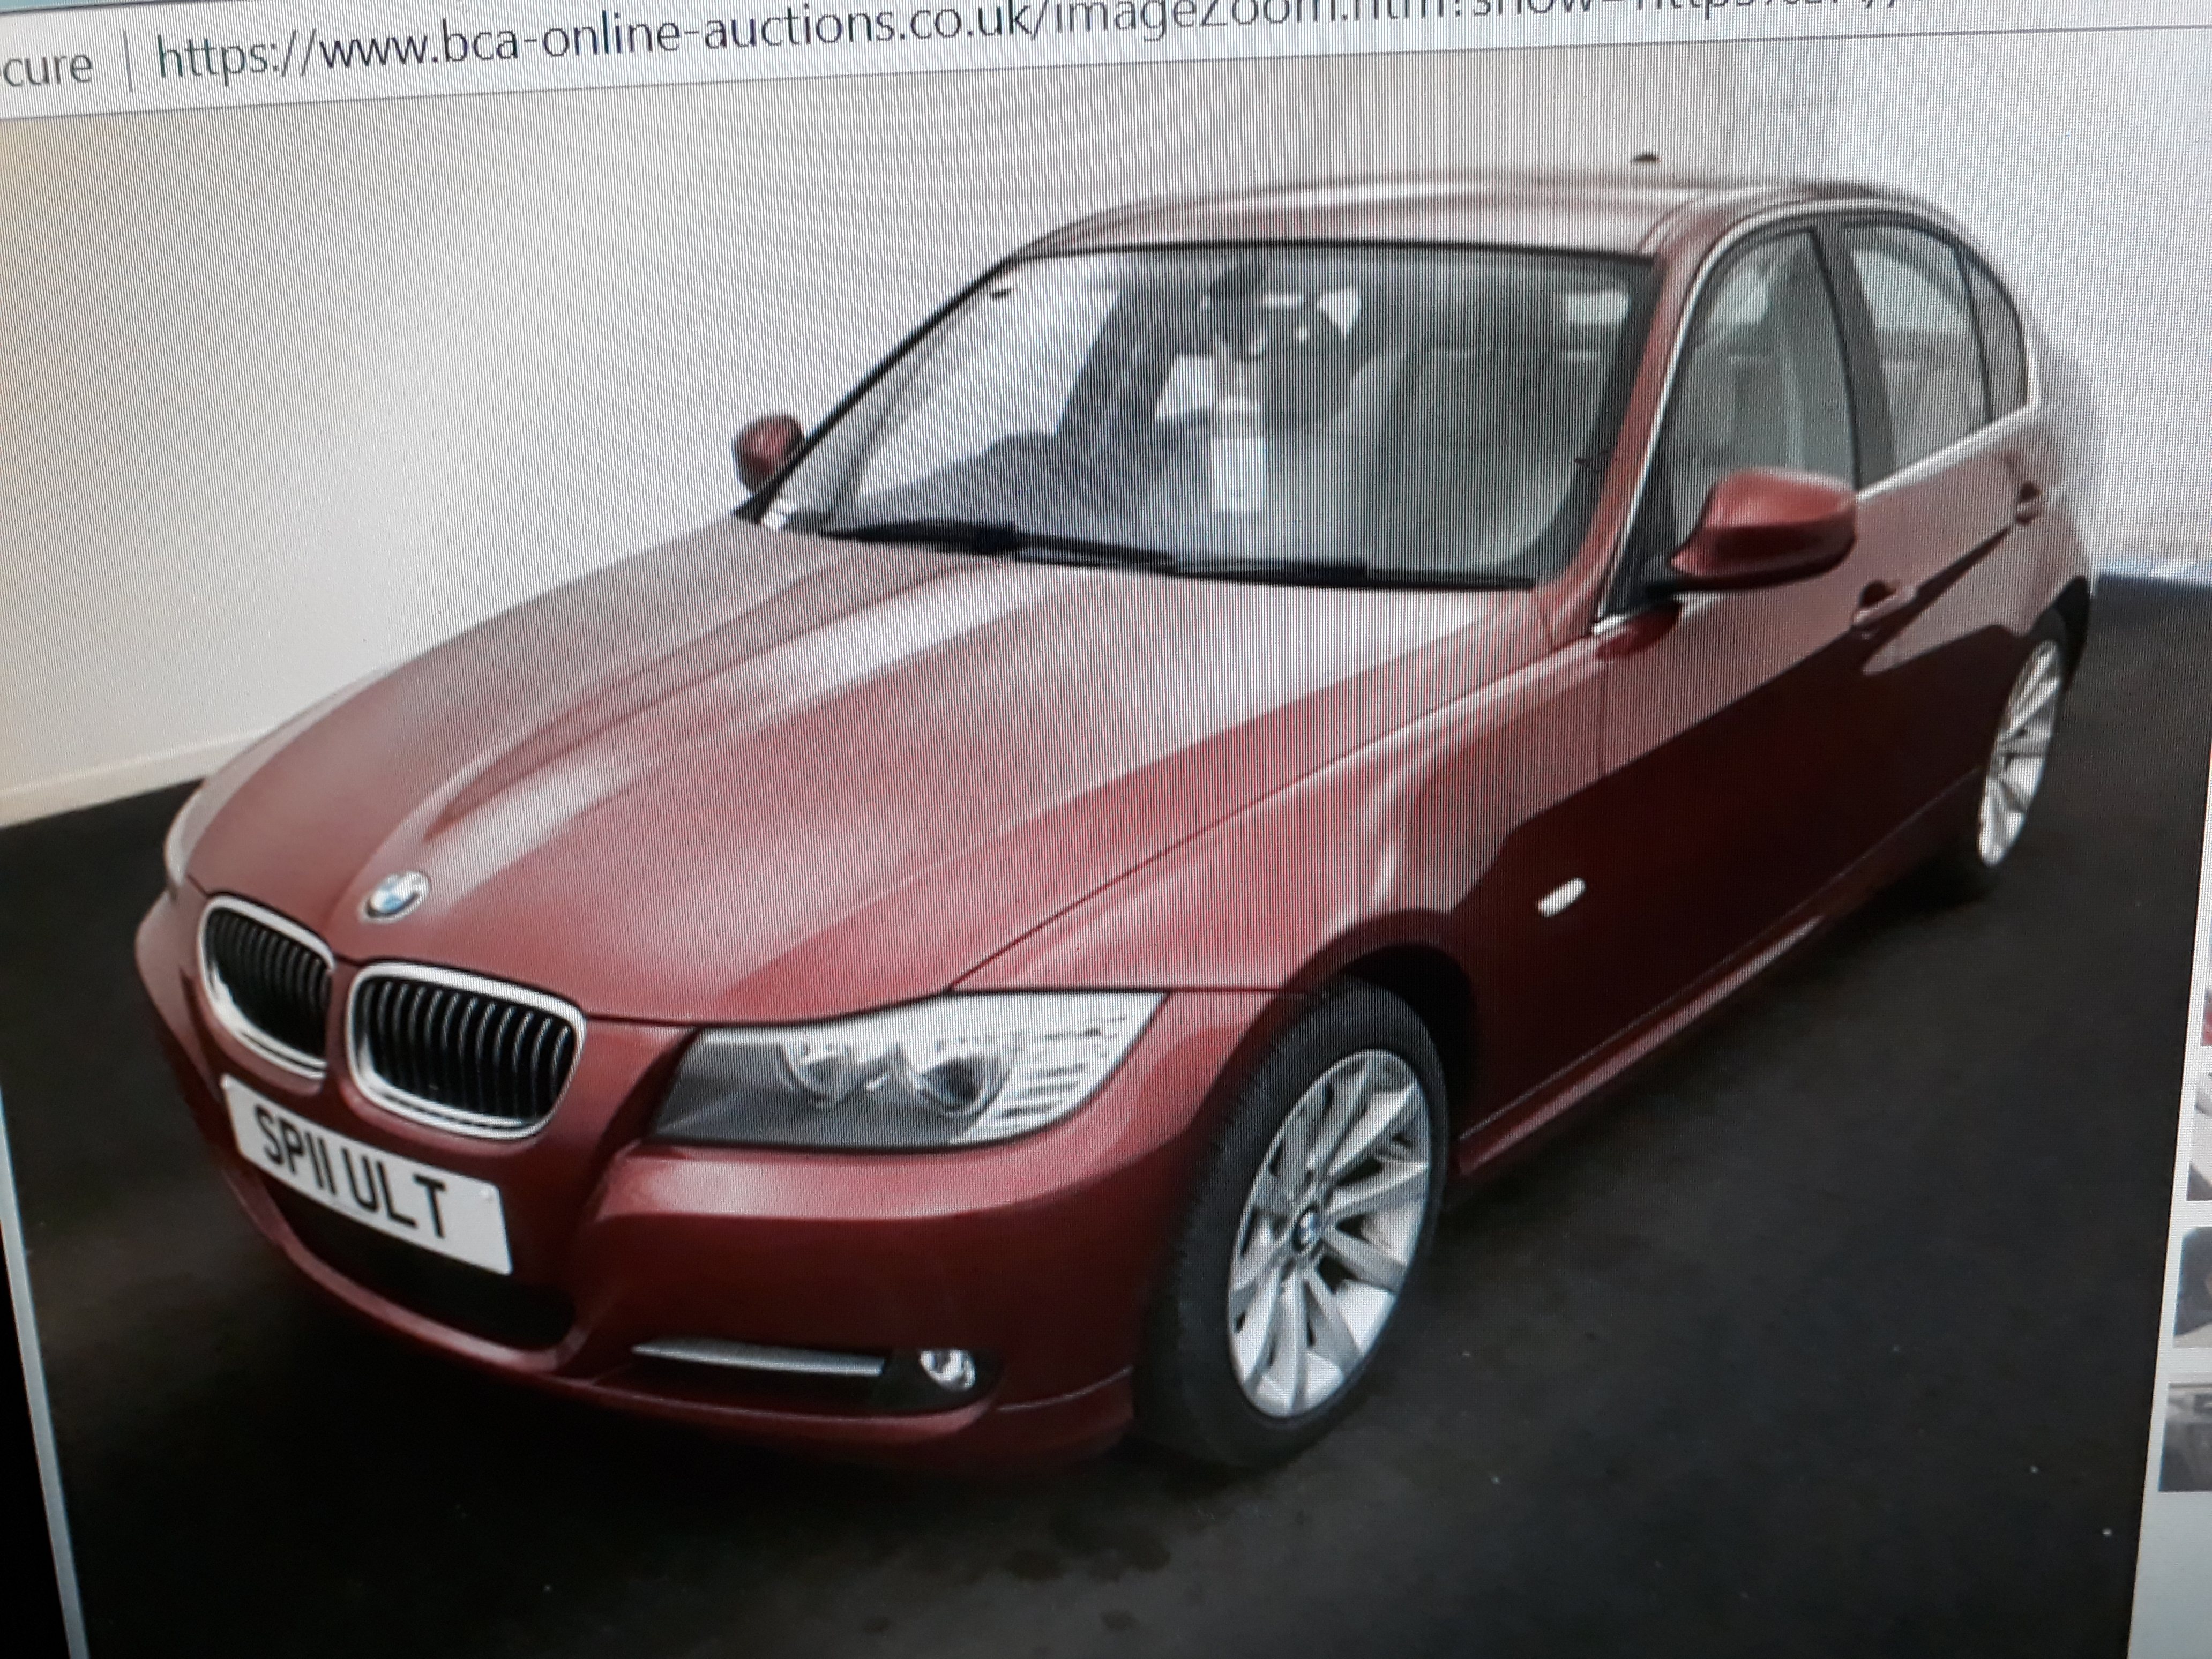 BMW 3 Series Exclusive SOLD